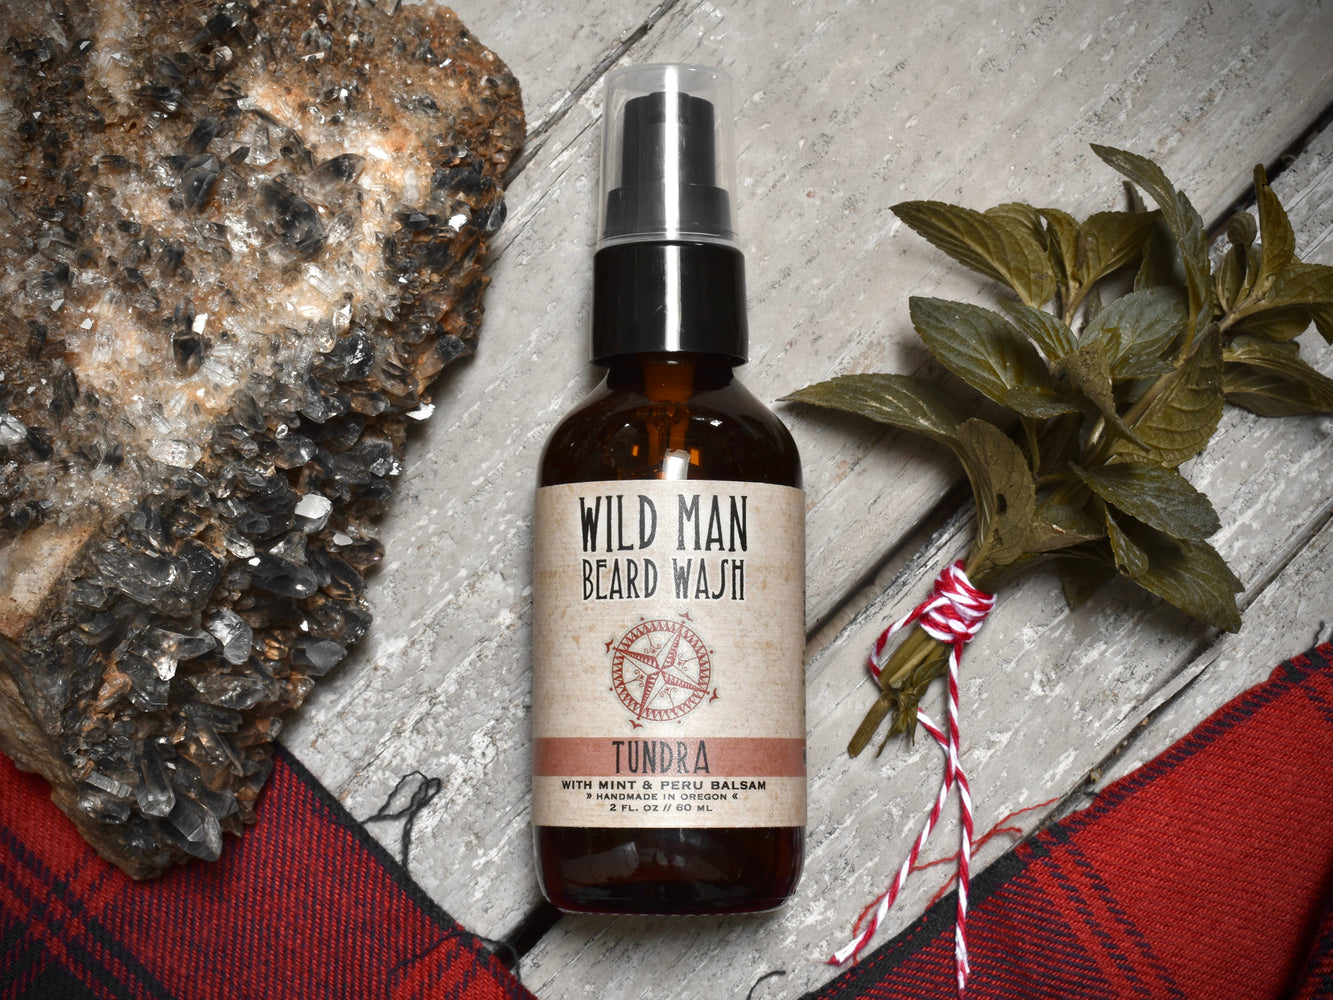 Wild Man Beard Wash - Tundra